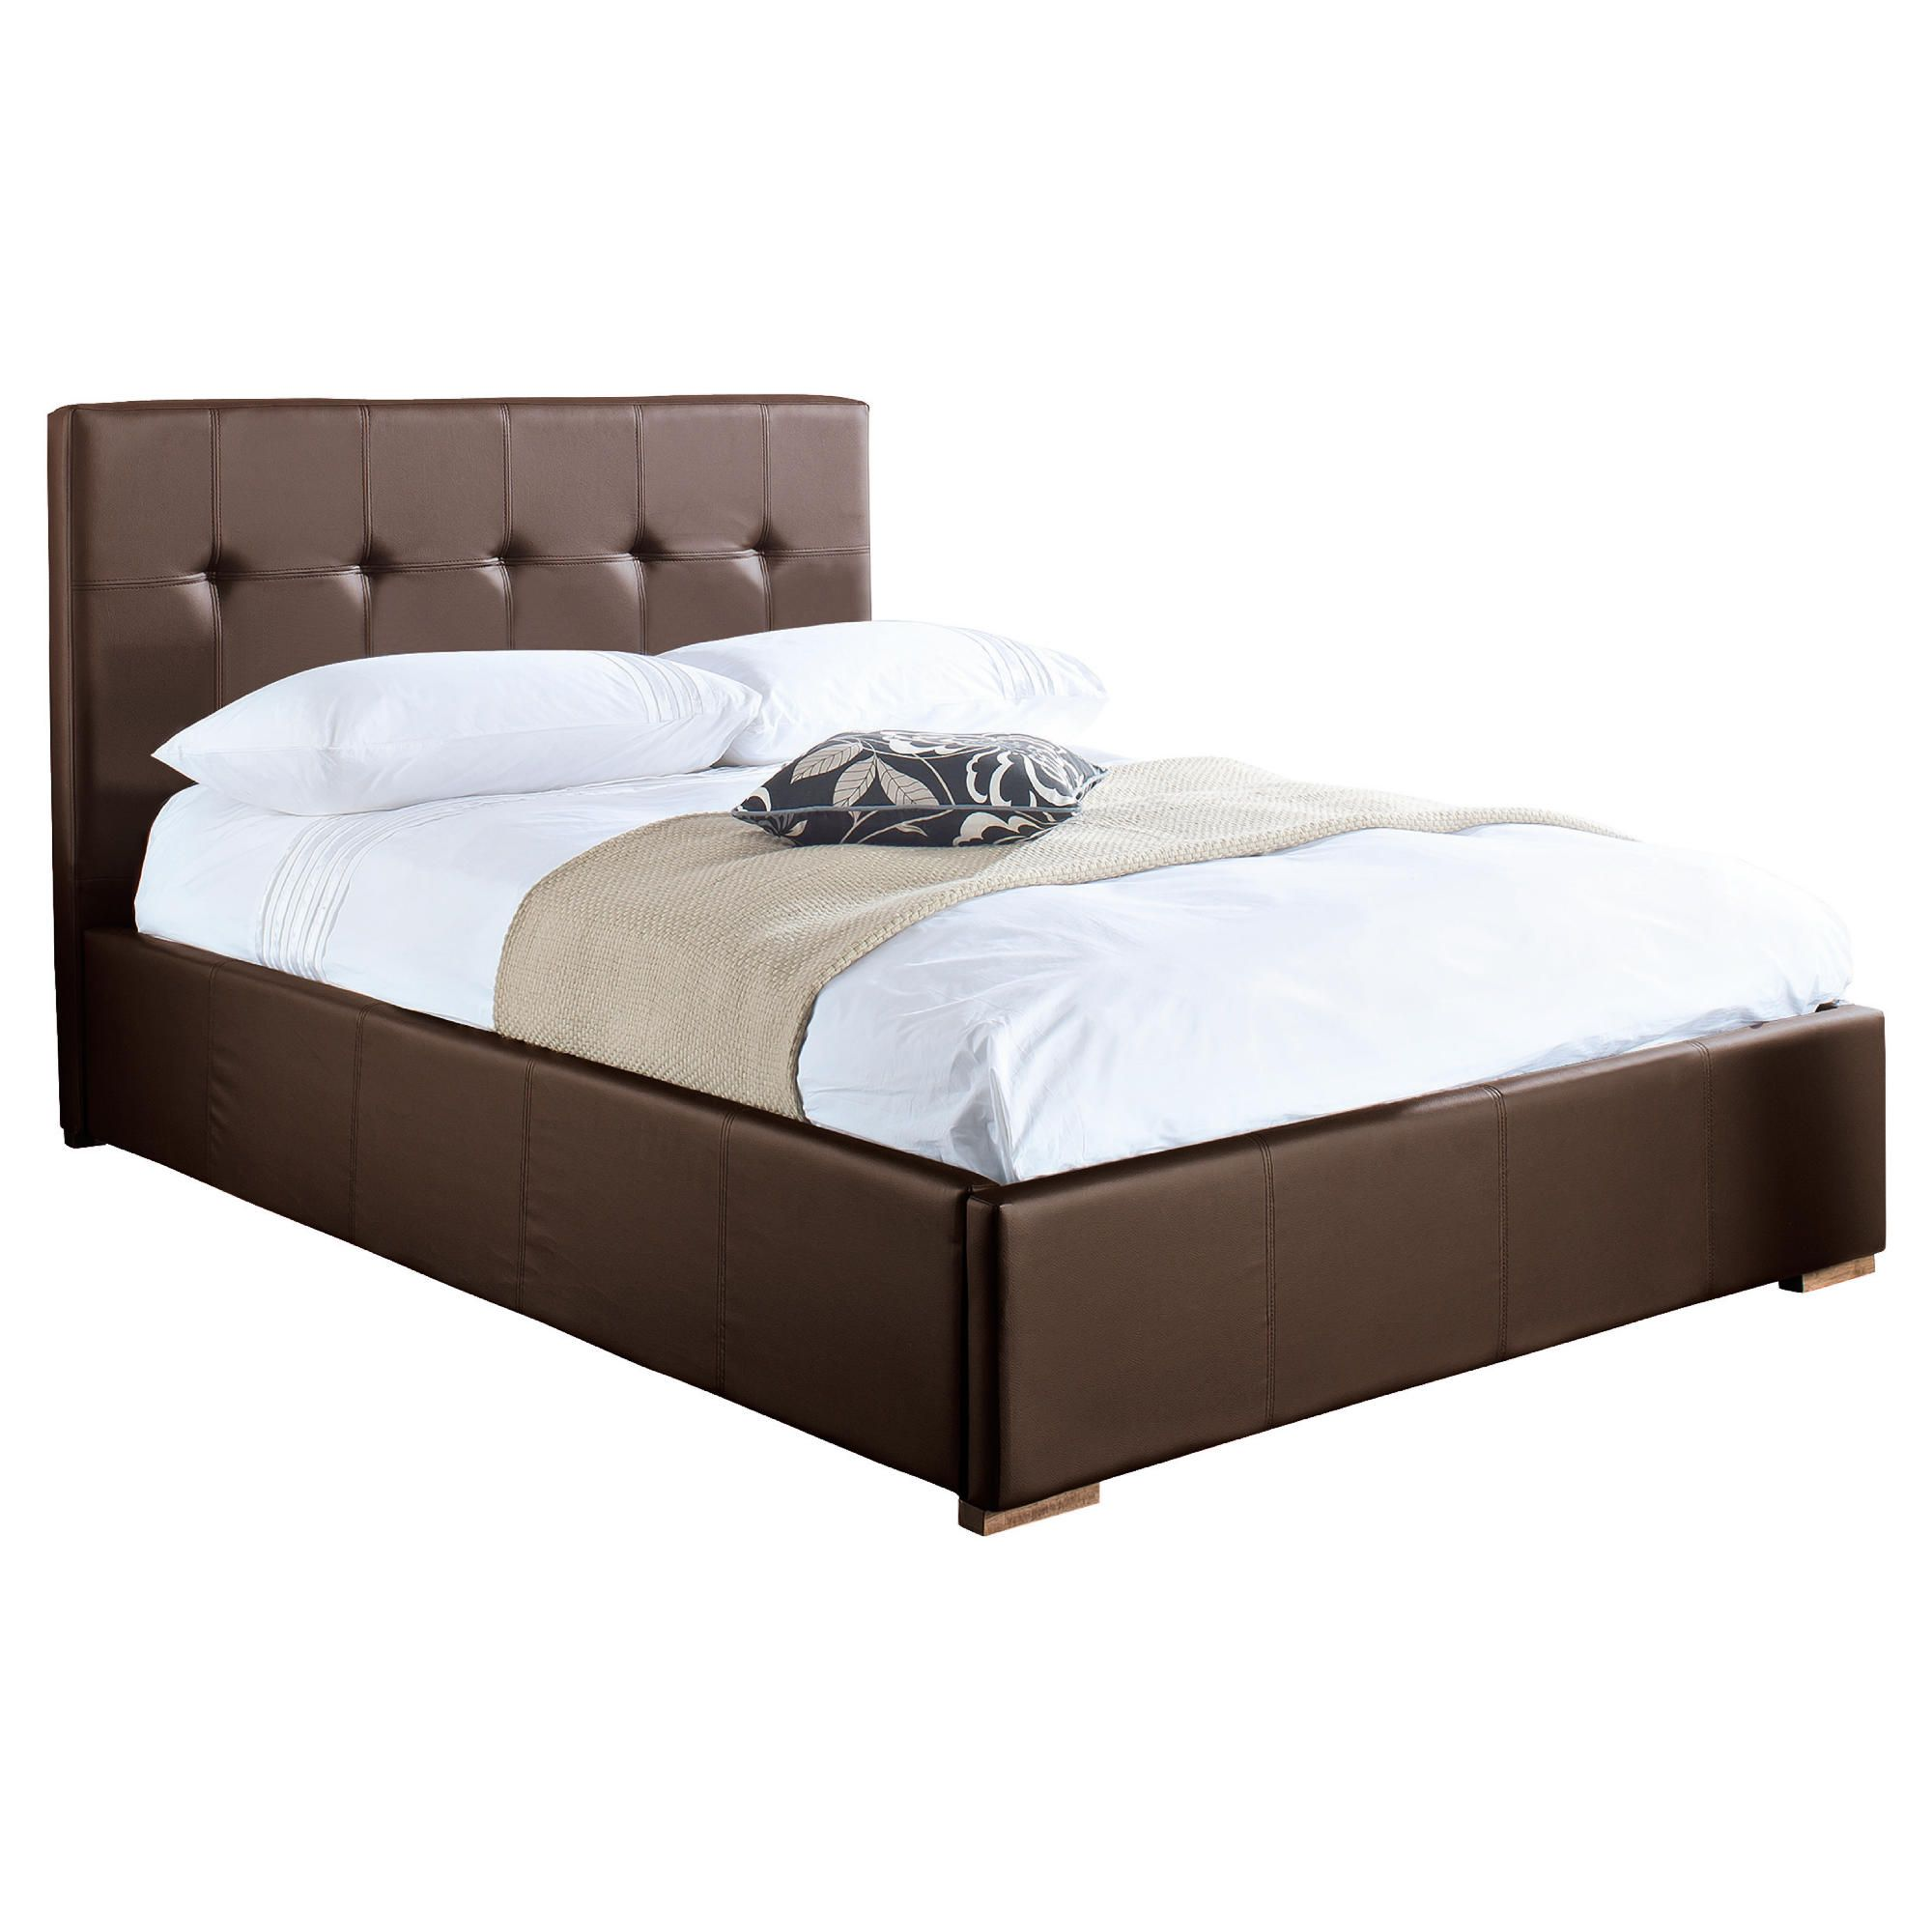 Orleans Double Storage Bed, Brown Faux Leather at Tescos Direct